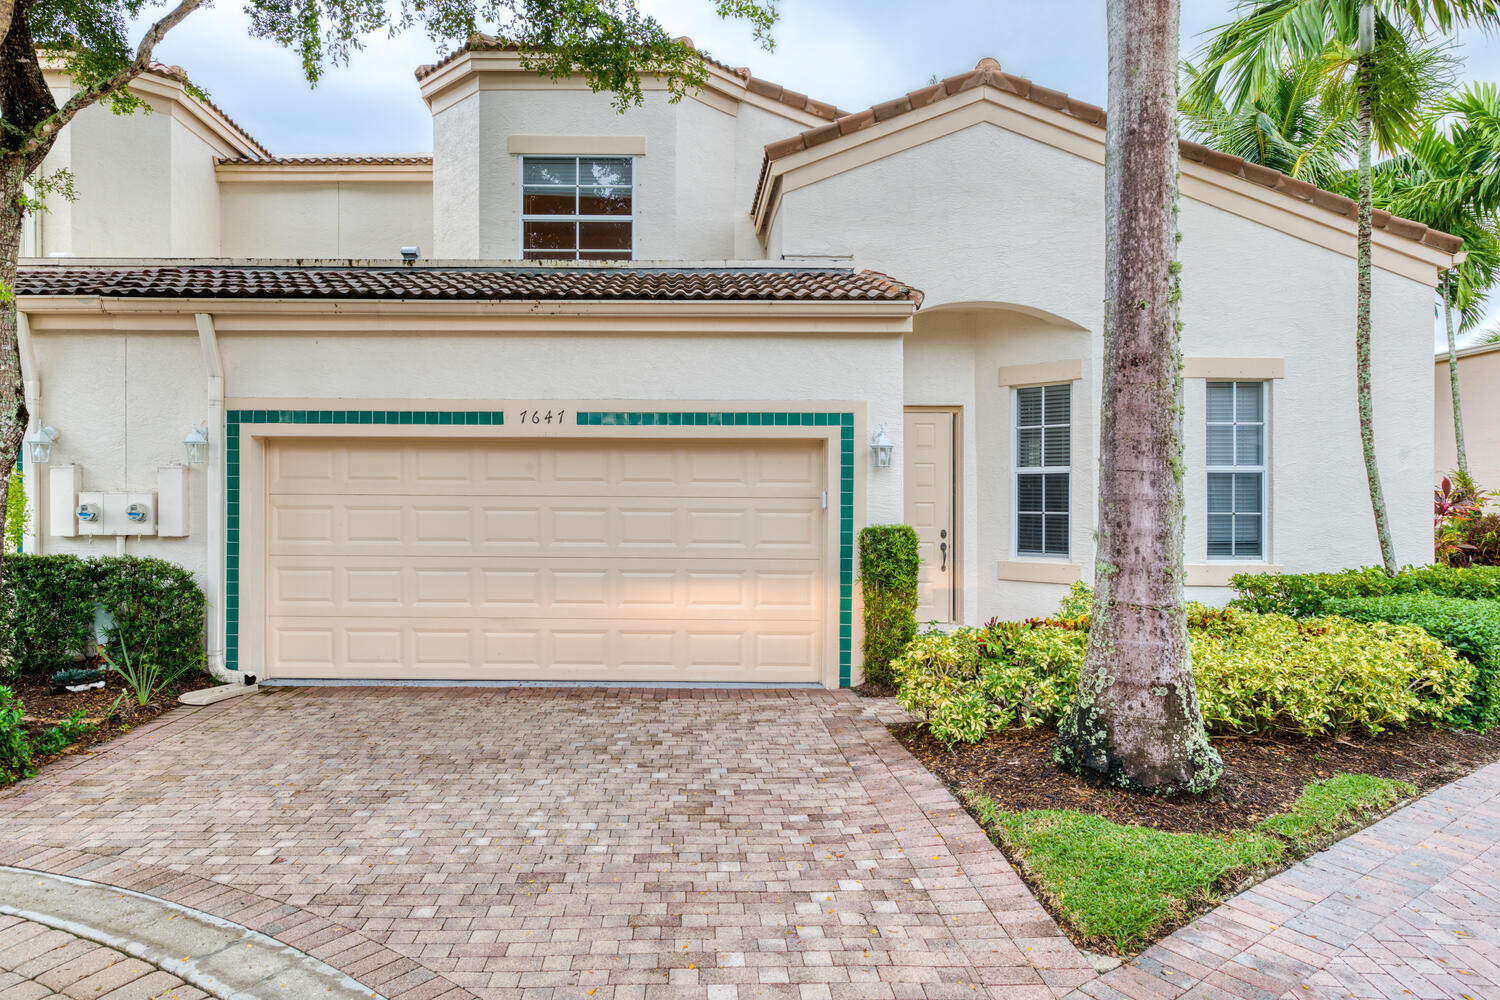 7647 Gumbo Limbo Court West Palm Beach, FL 33412